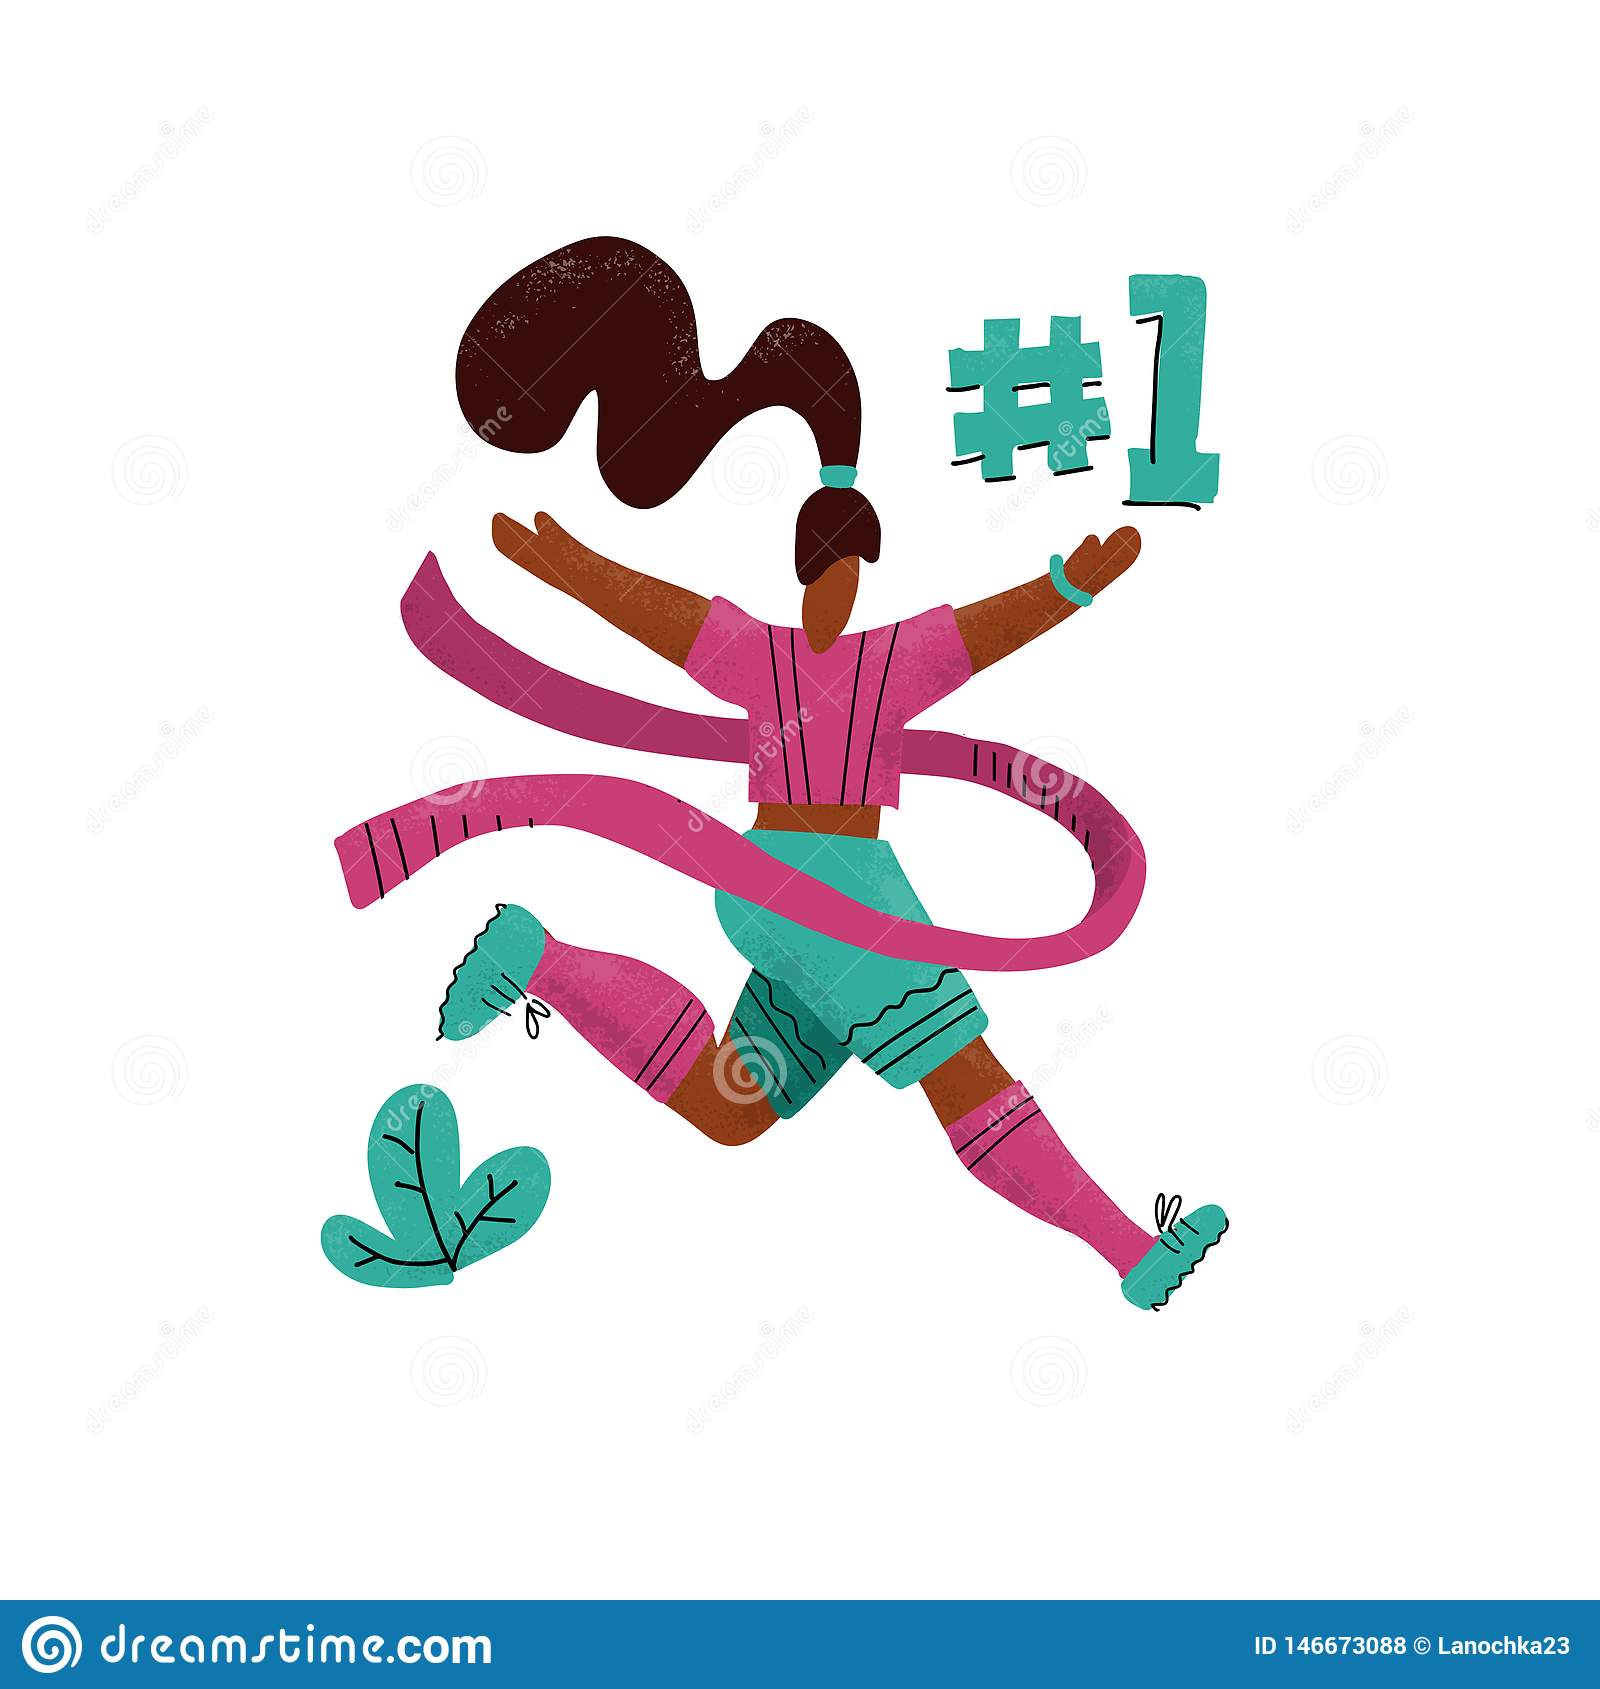 Winner woman running into the finish. Happy hand drawn sports woman crossing finish tape. Athletic girl taking part in running